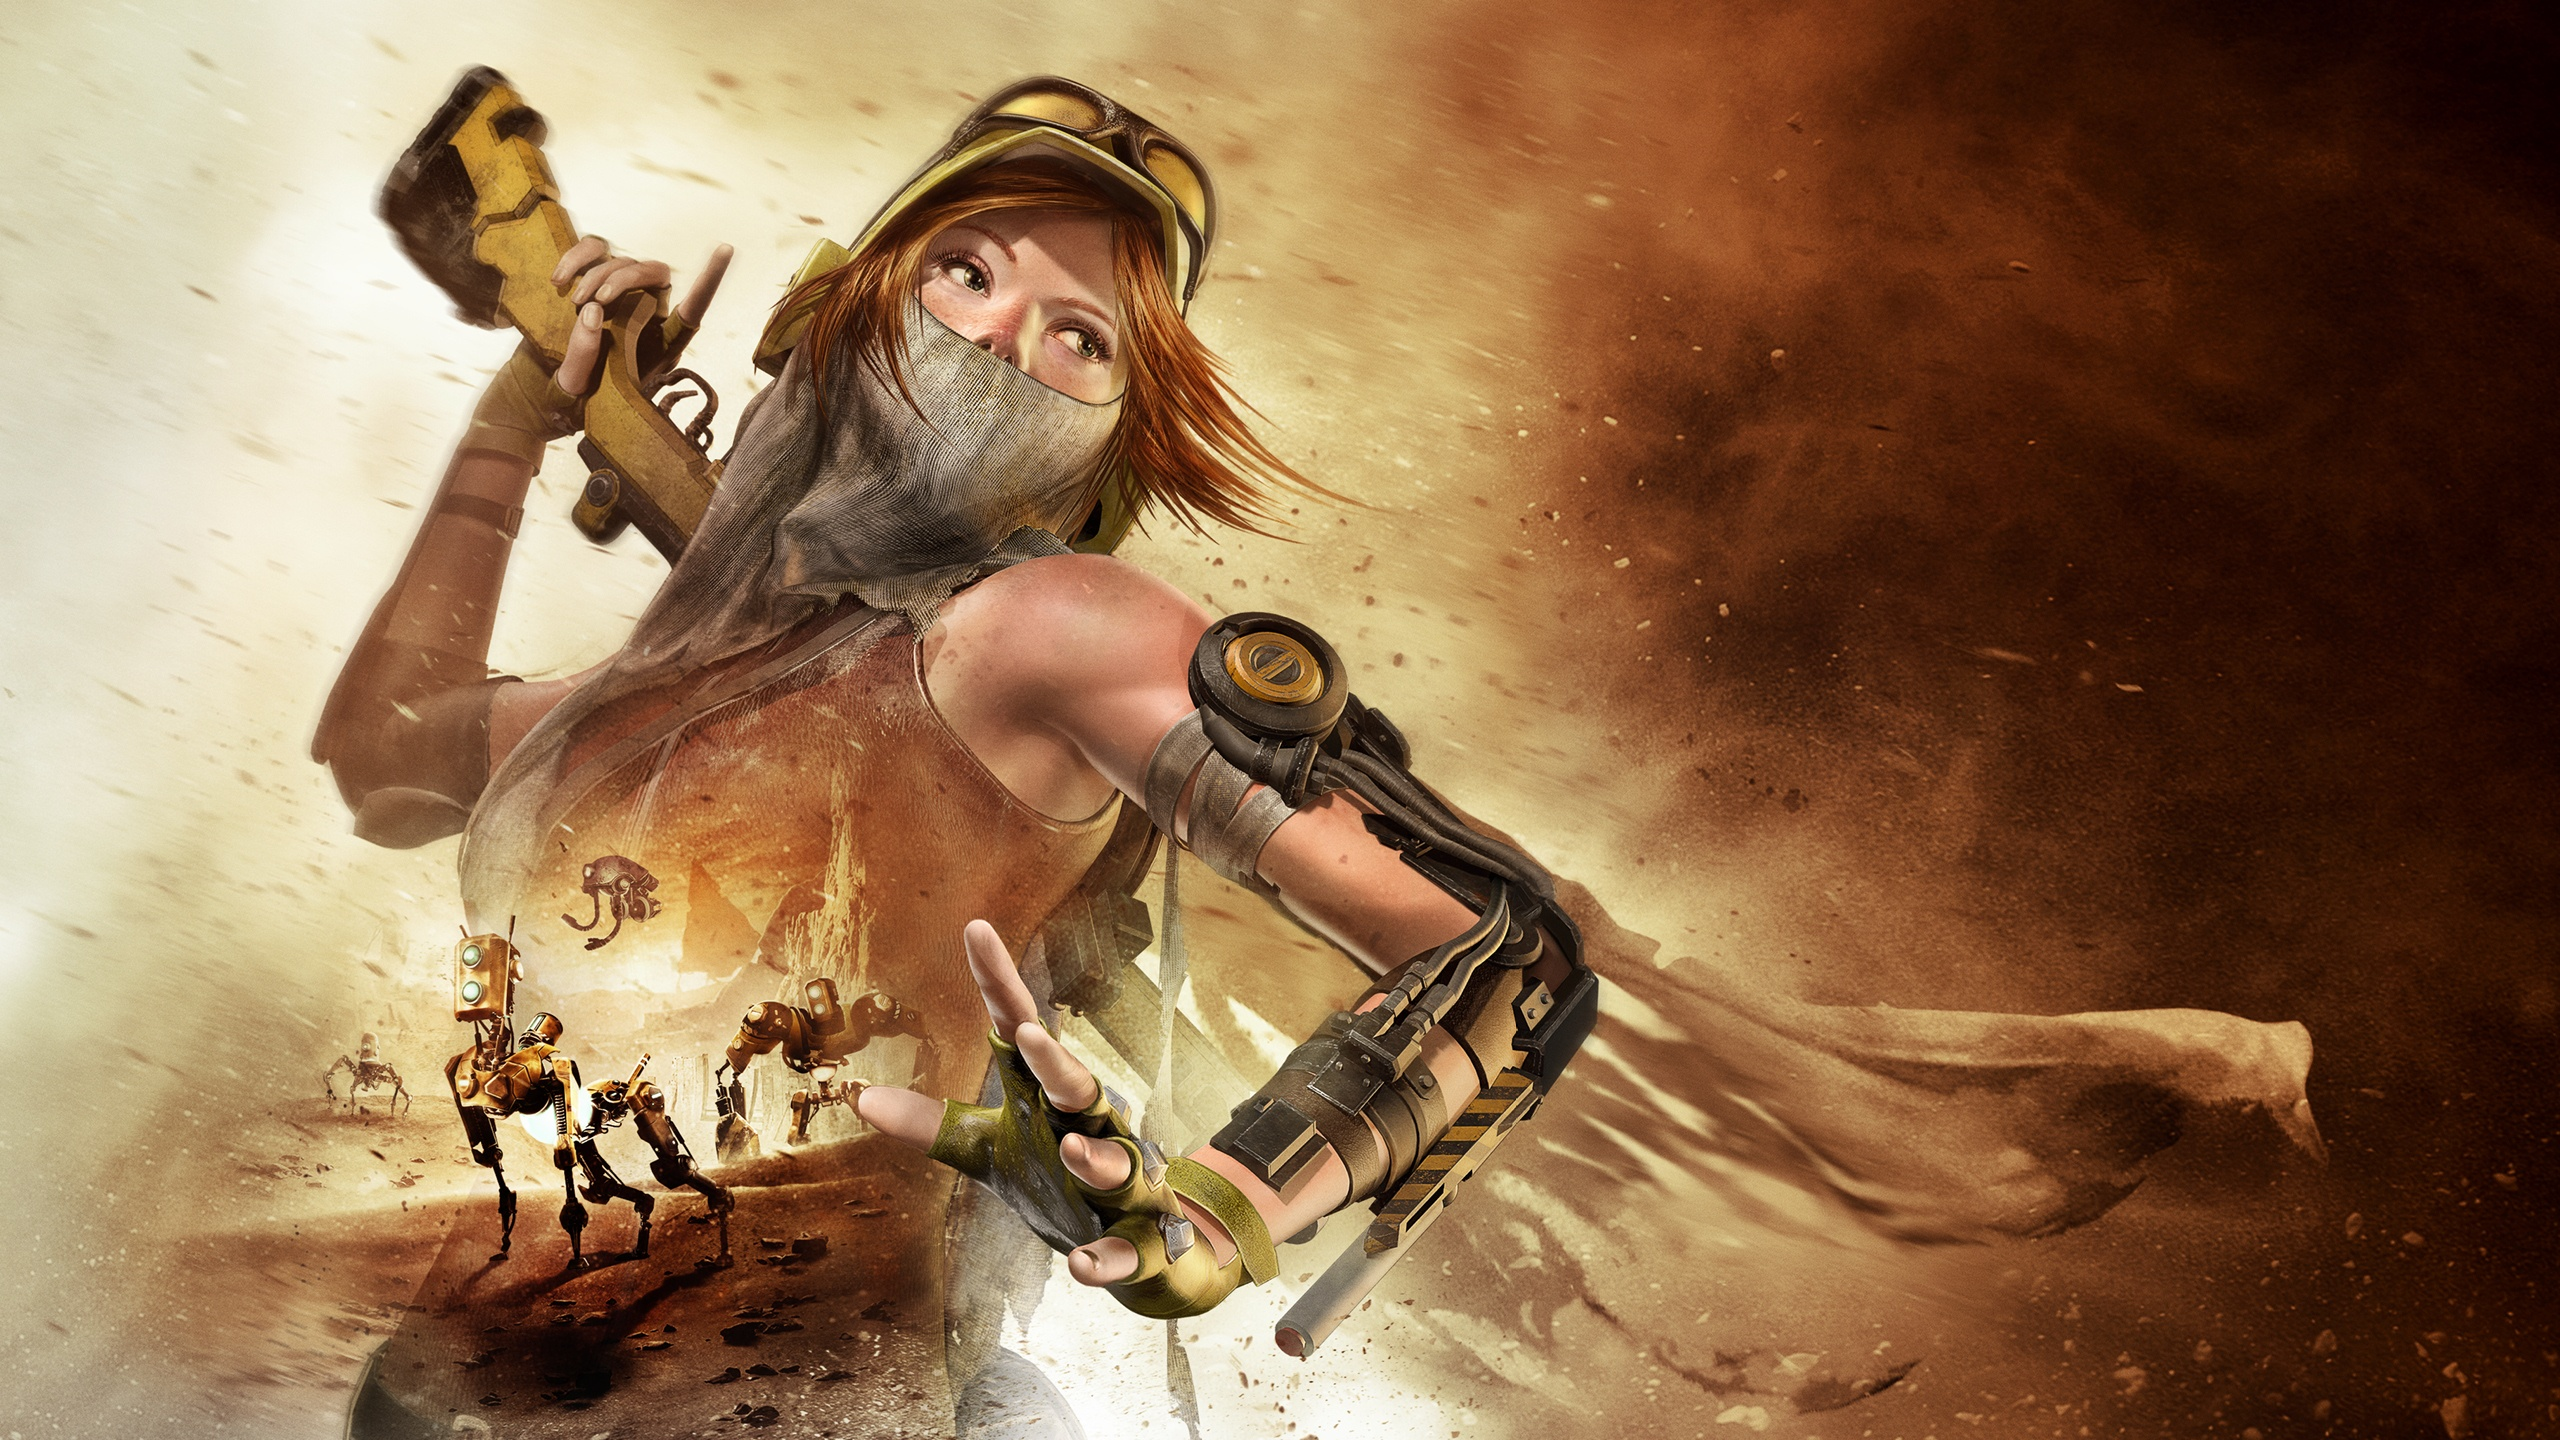 Wallpaper download download - Recore Hd Xbox One